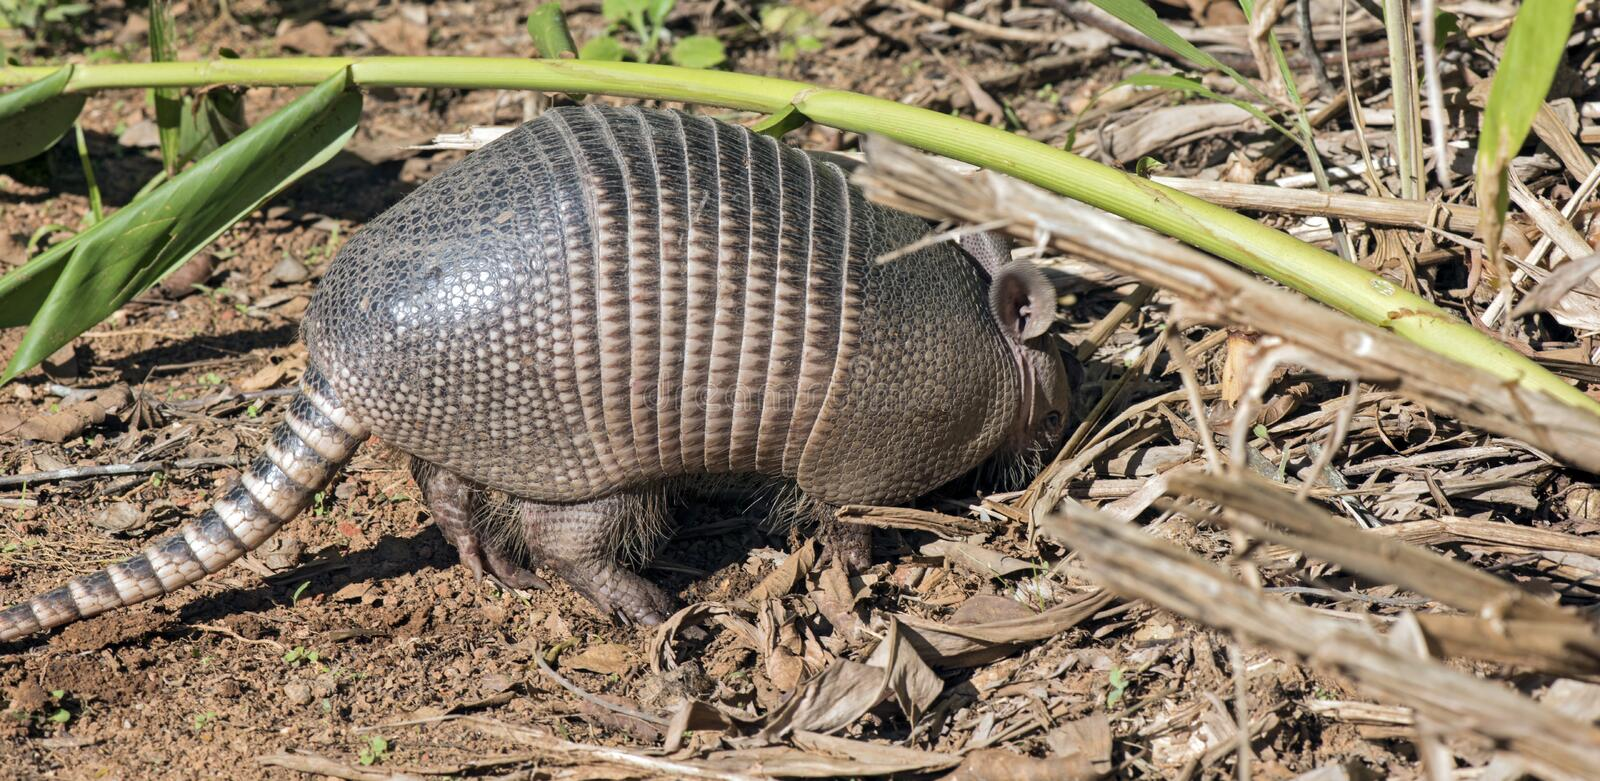 Armadillo searching for food in the field stock photography